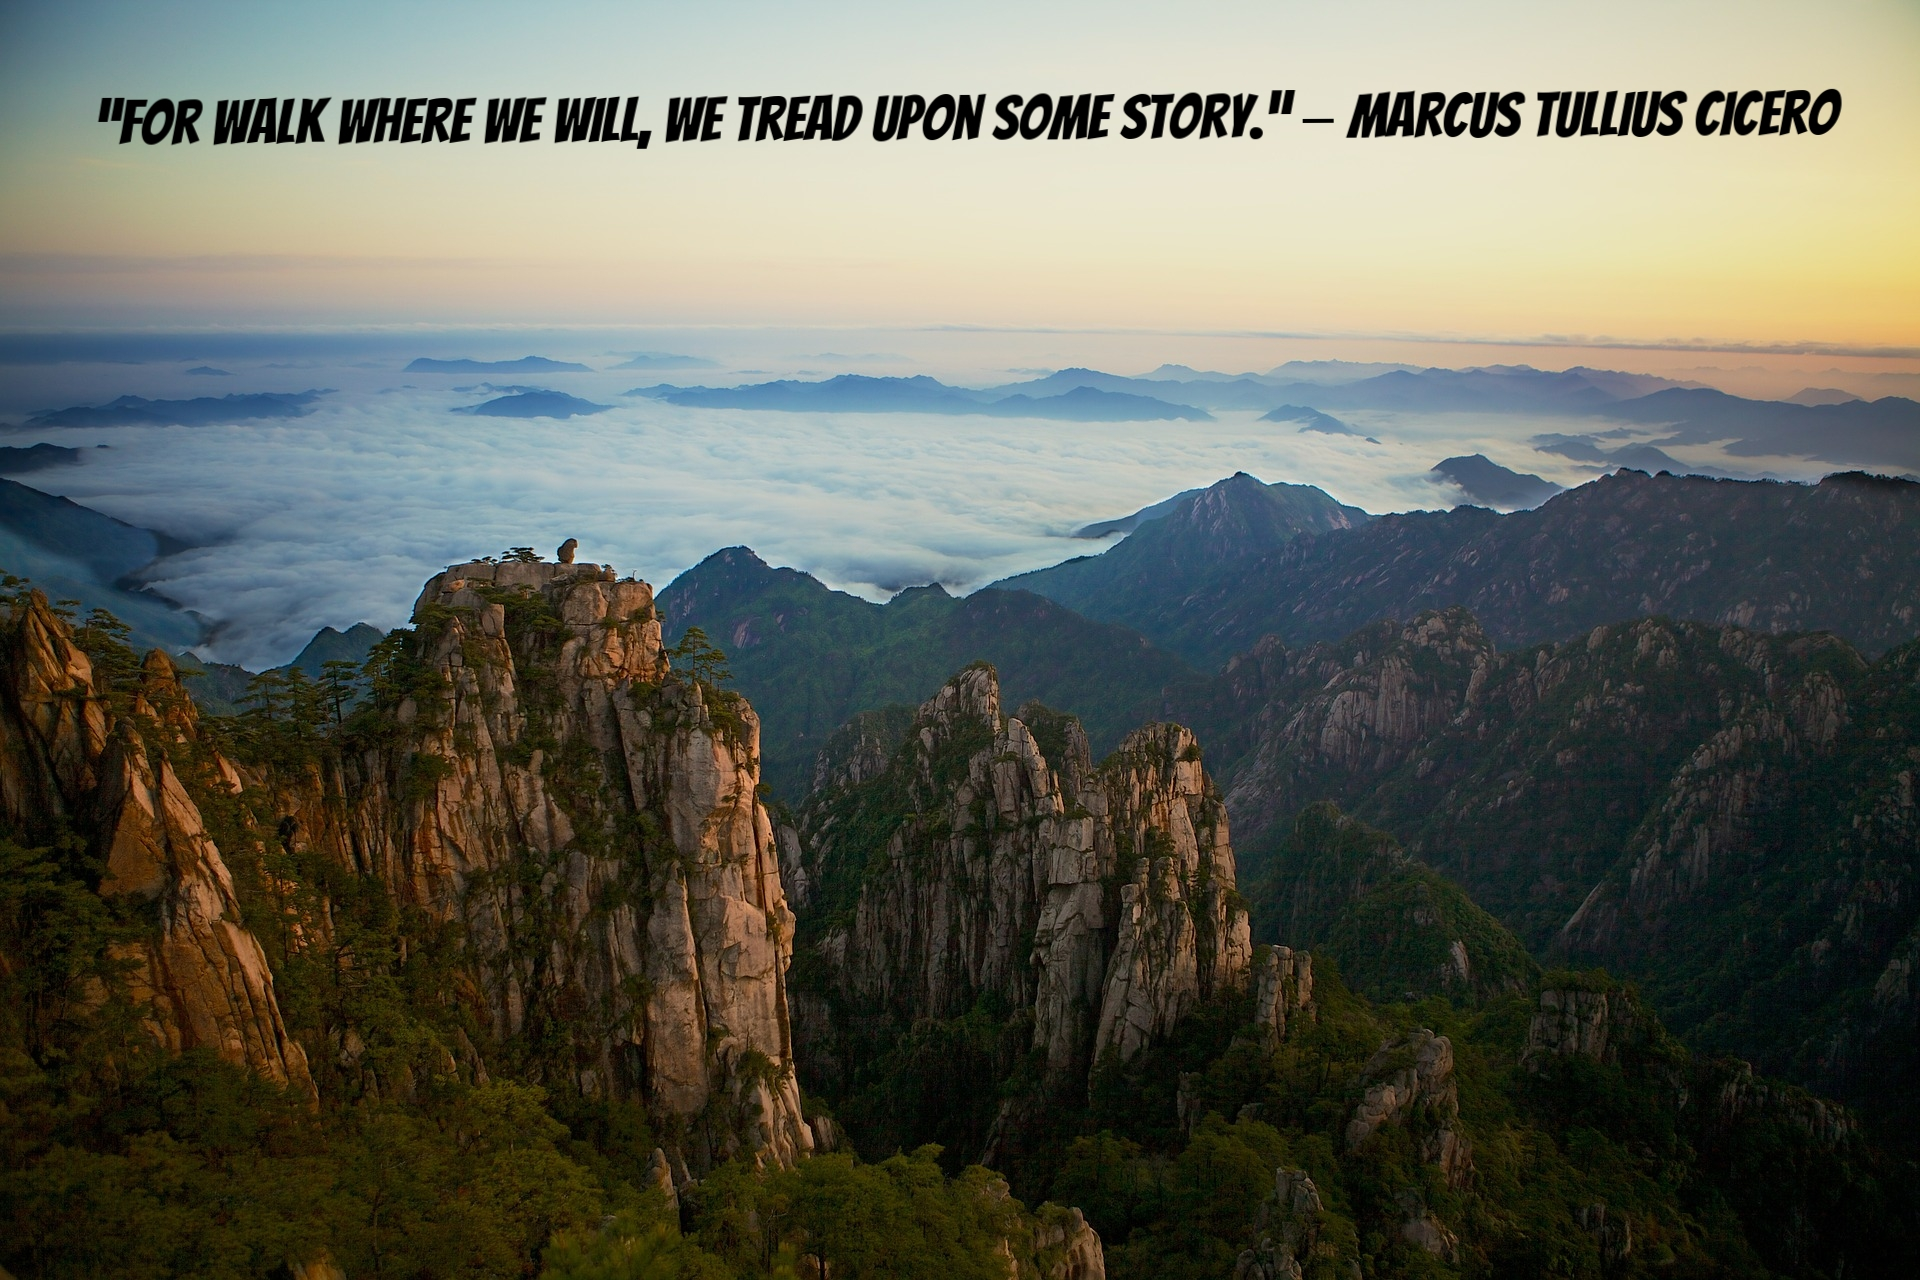 Ancient Travel Quotes - ancient words of wisdom, ancient sayings, short inspirational quotes, China